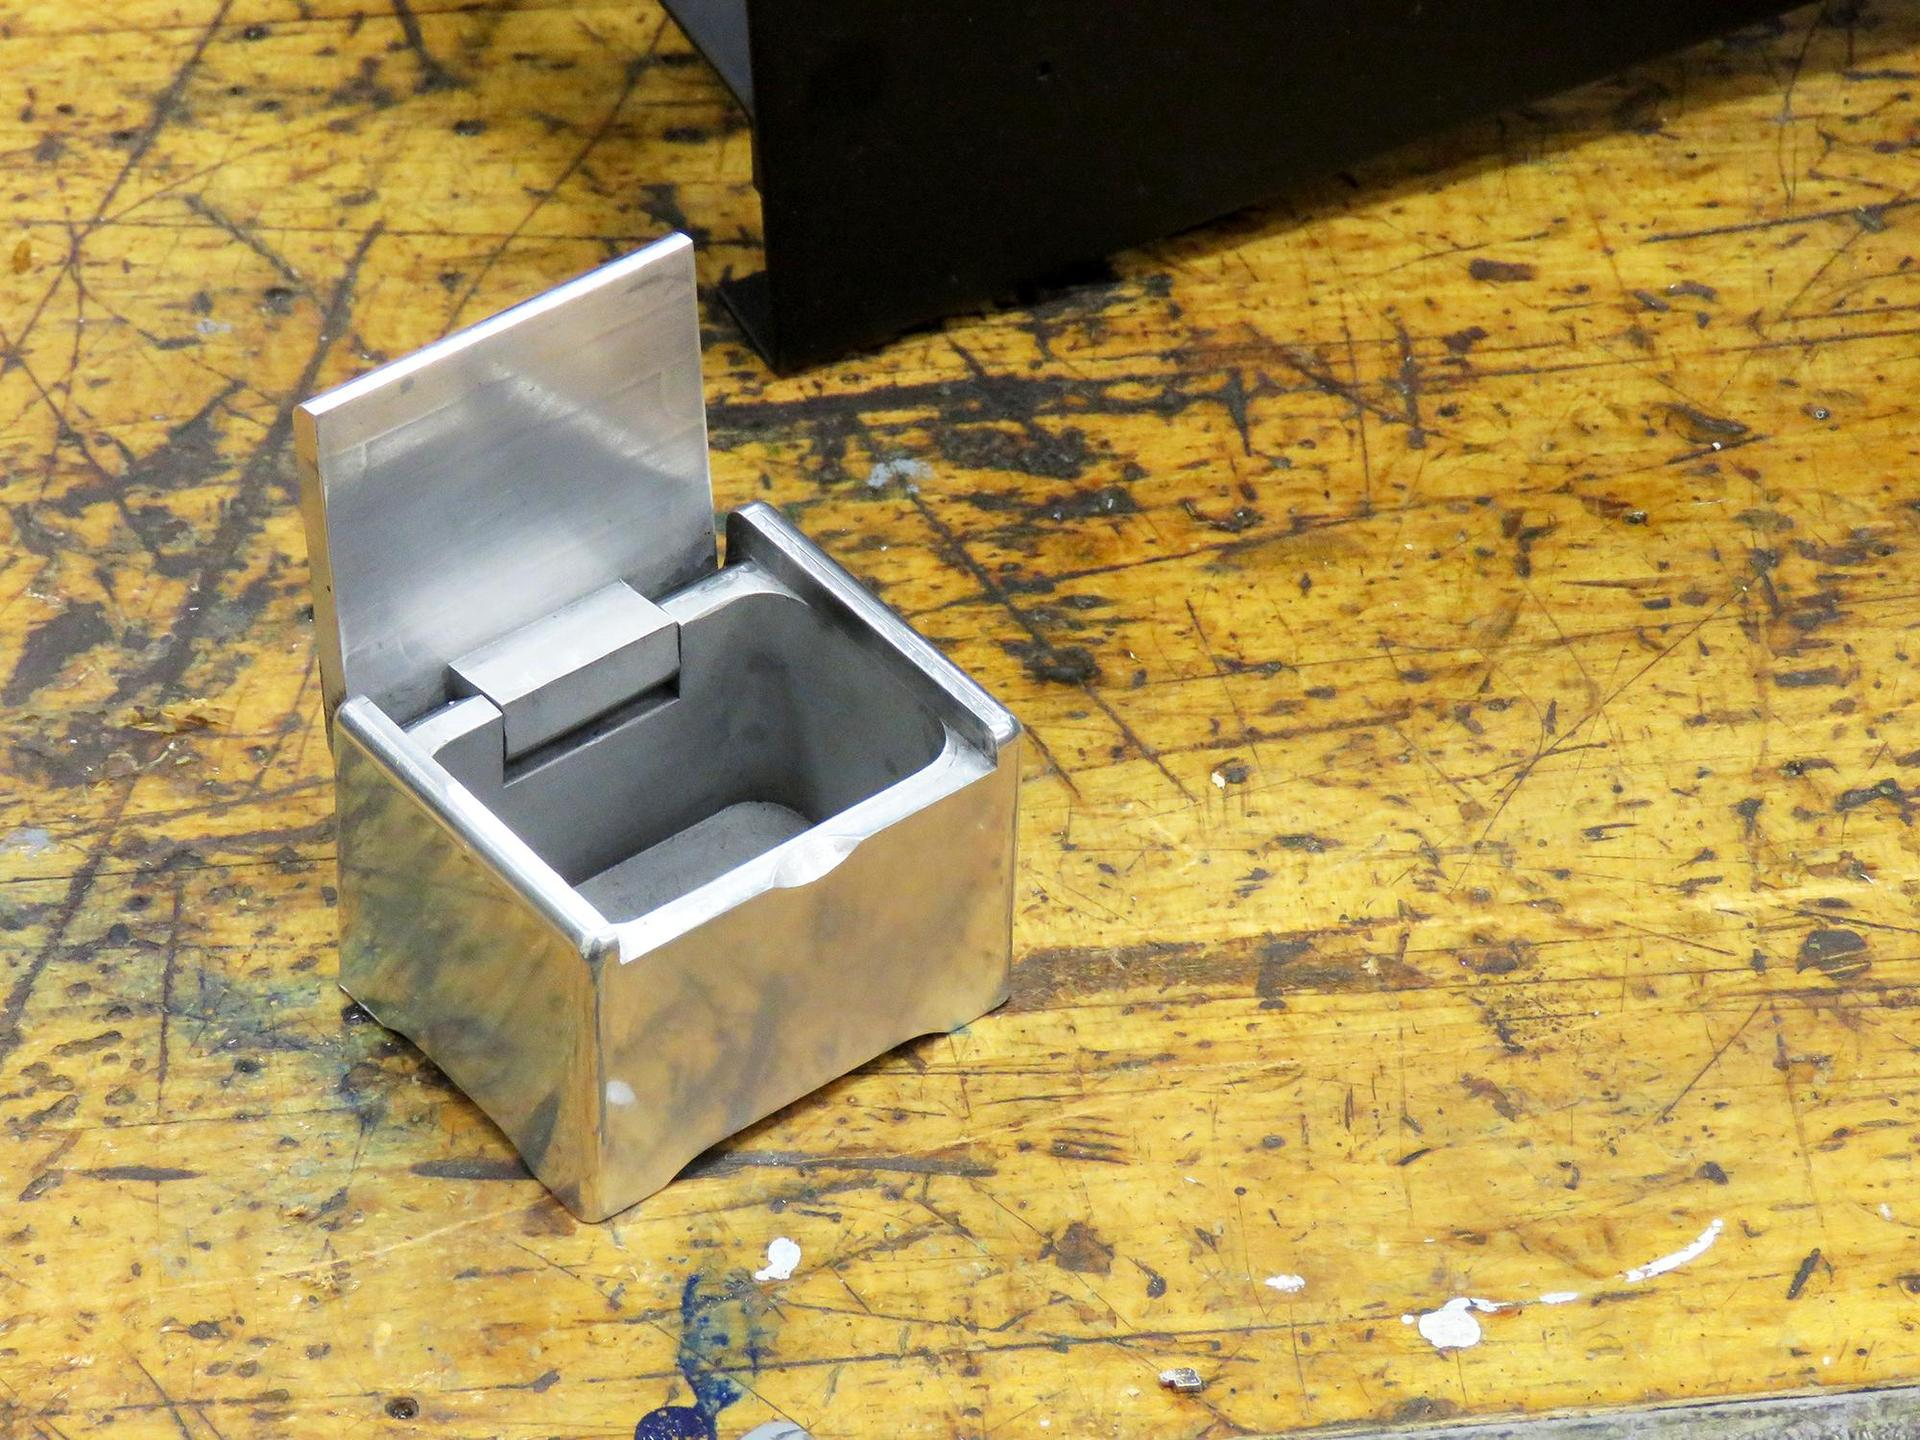 A jewelry box made in machine tool technology class